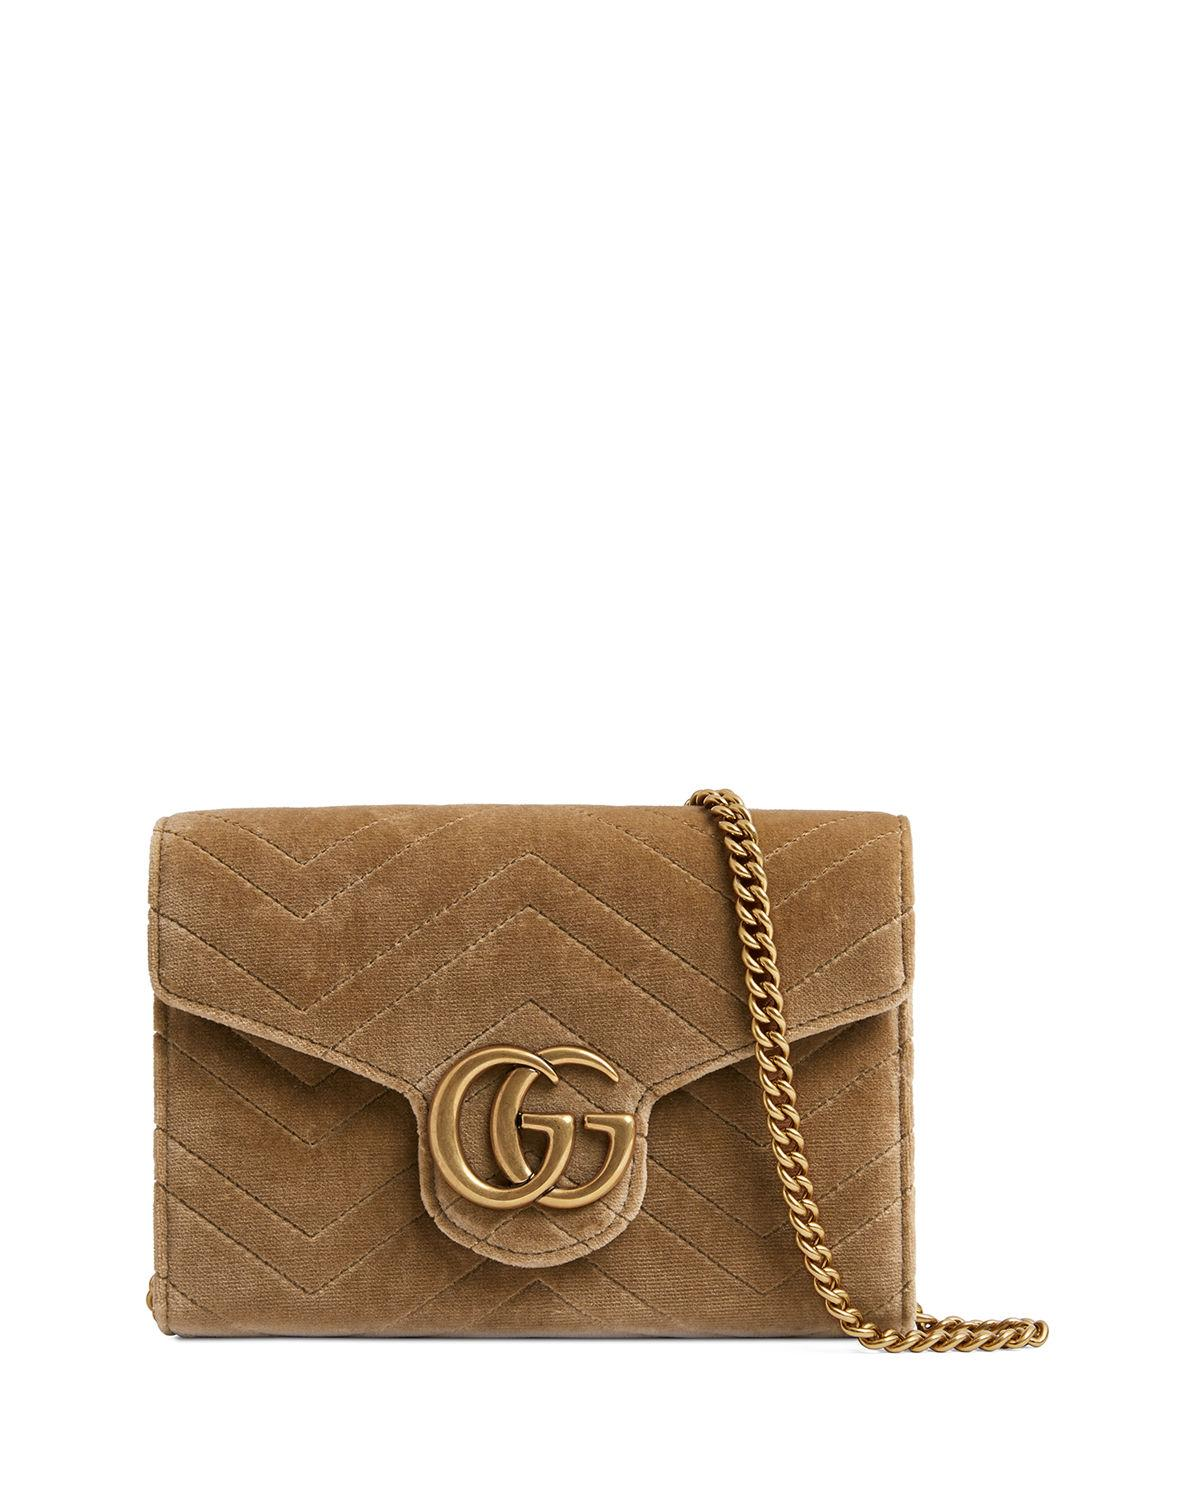 2be6ec223025 Gucci Gg Marmont 2.0 Matelasse Velvet Wallet On A Chain, Taupe ...